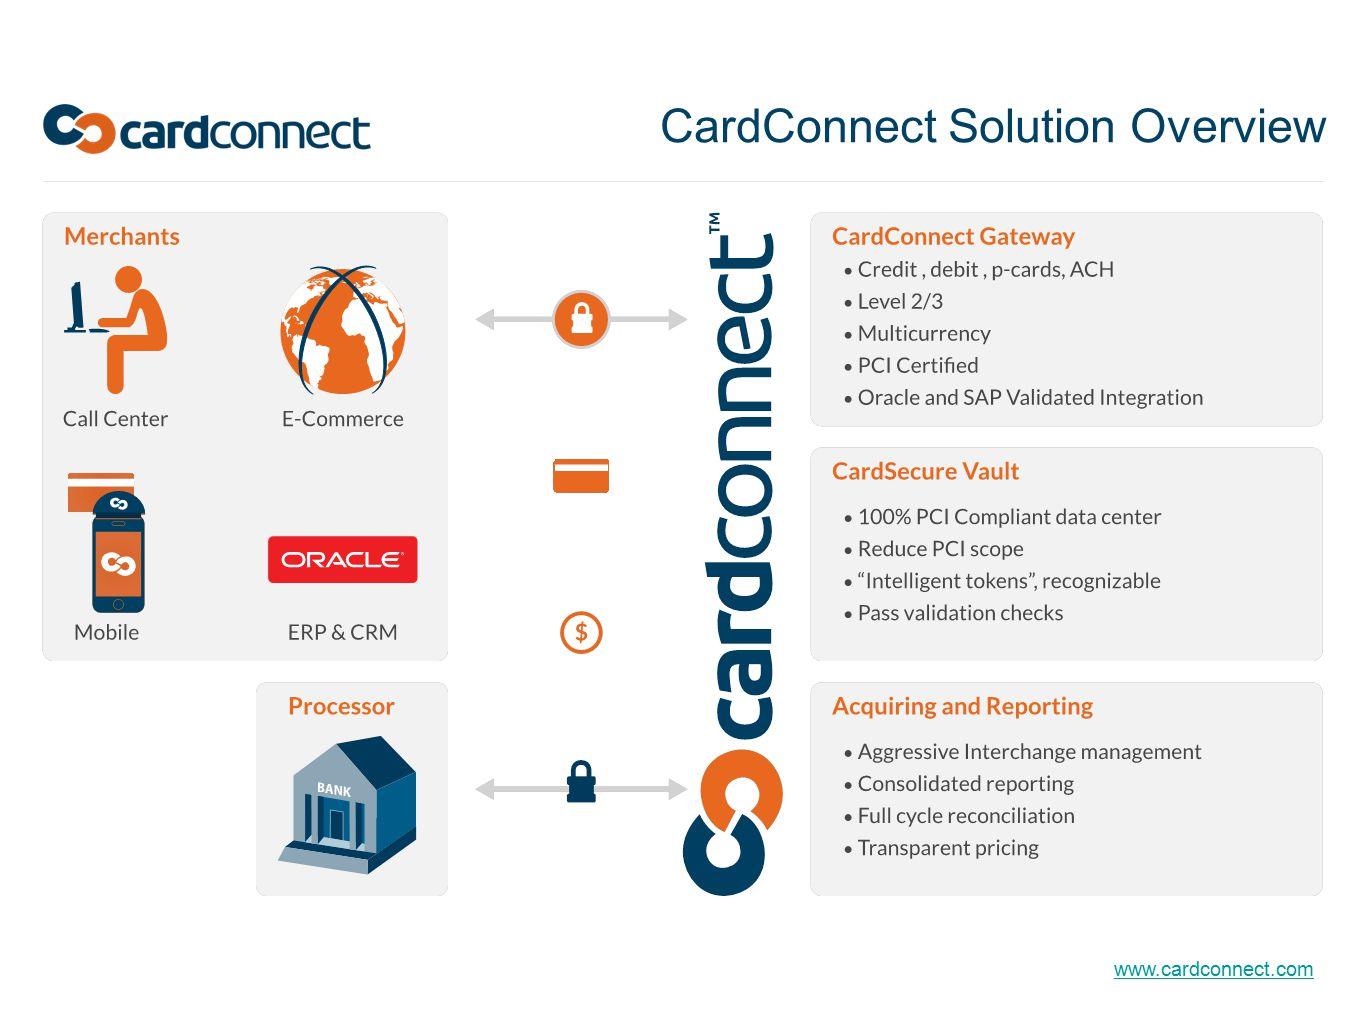 CardConnect Solution Overview